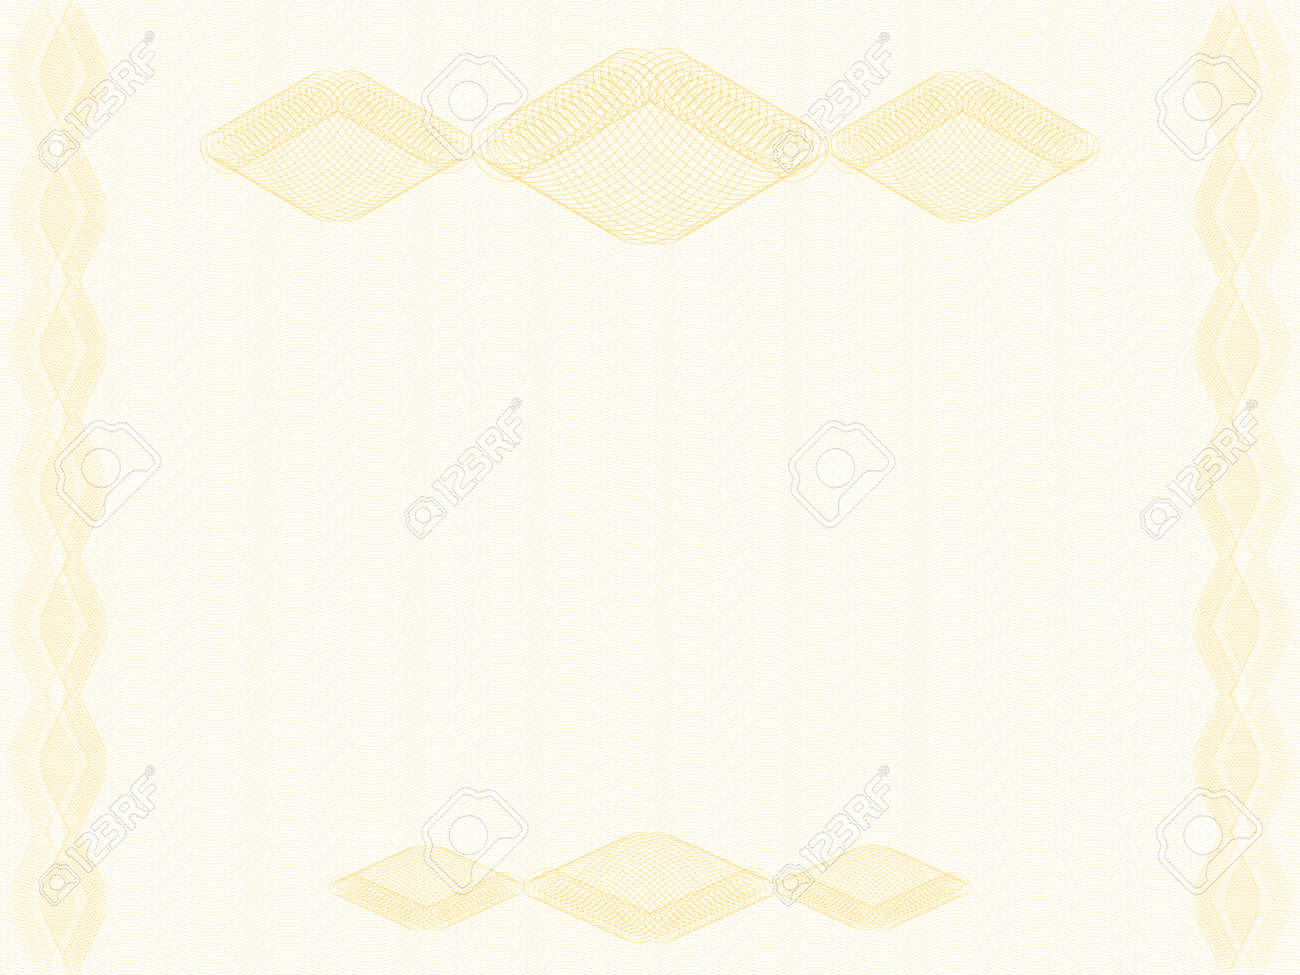 Elegant background decorated with rhombus border, copy space. Golden guilloche, watermark pattern, thin lines. Abstract design. Vector template A4 for certificate, diploma, passport, gift card, landscape orientation. EPS10 illustration - 168124035